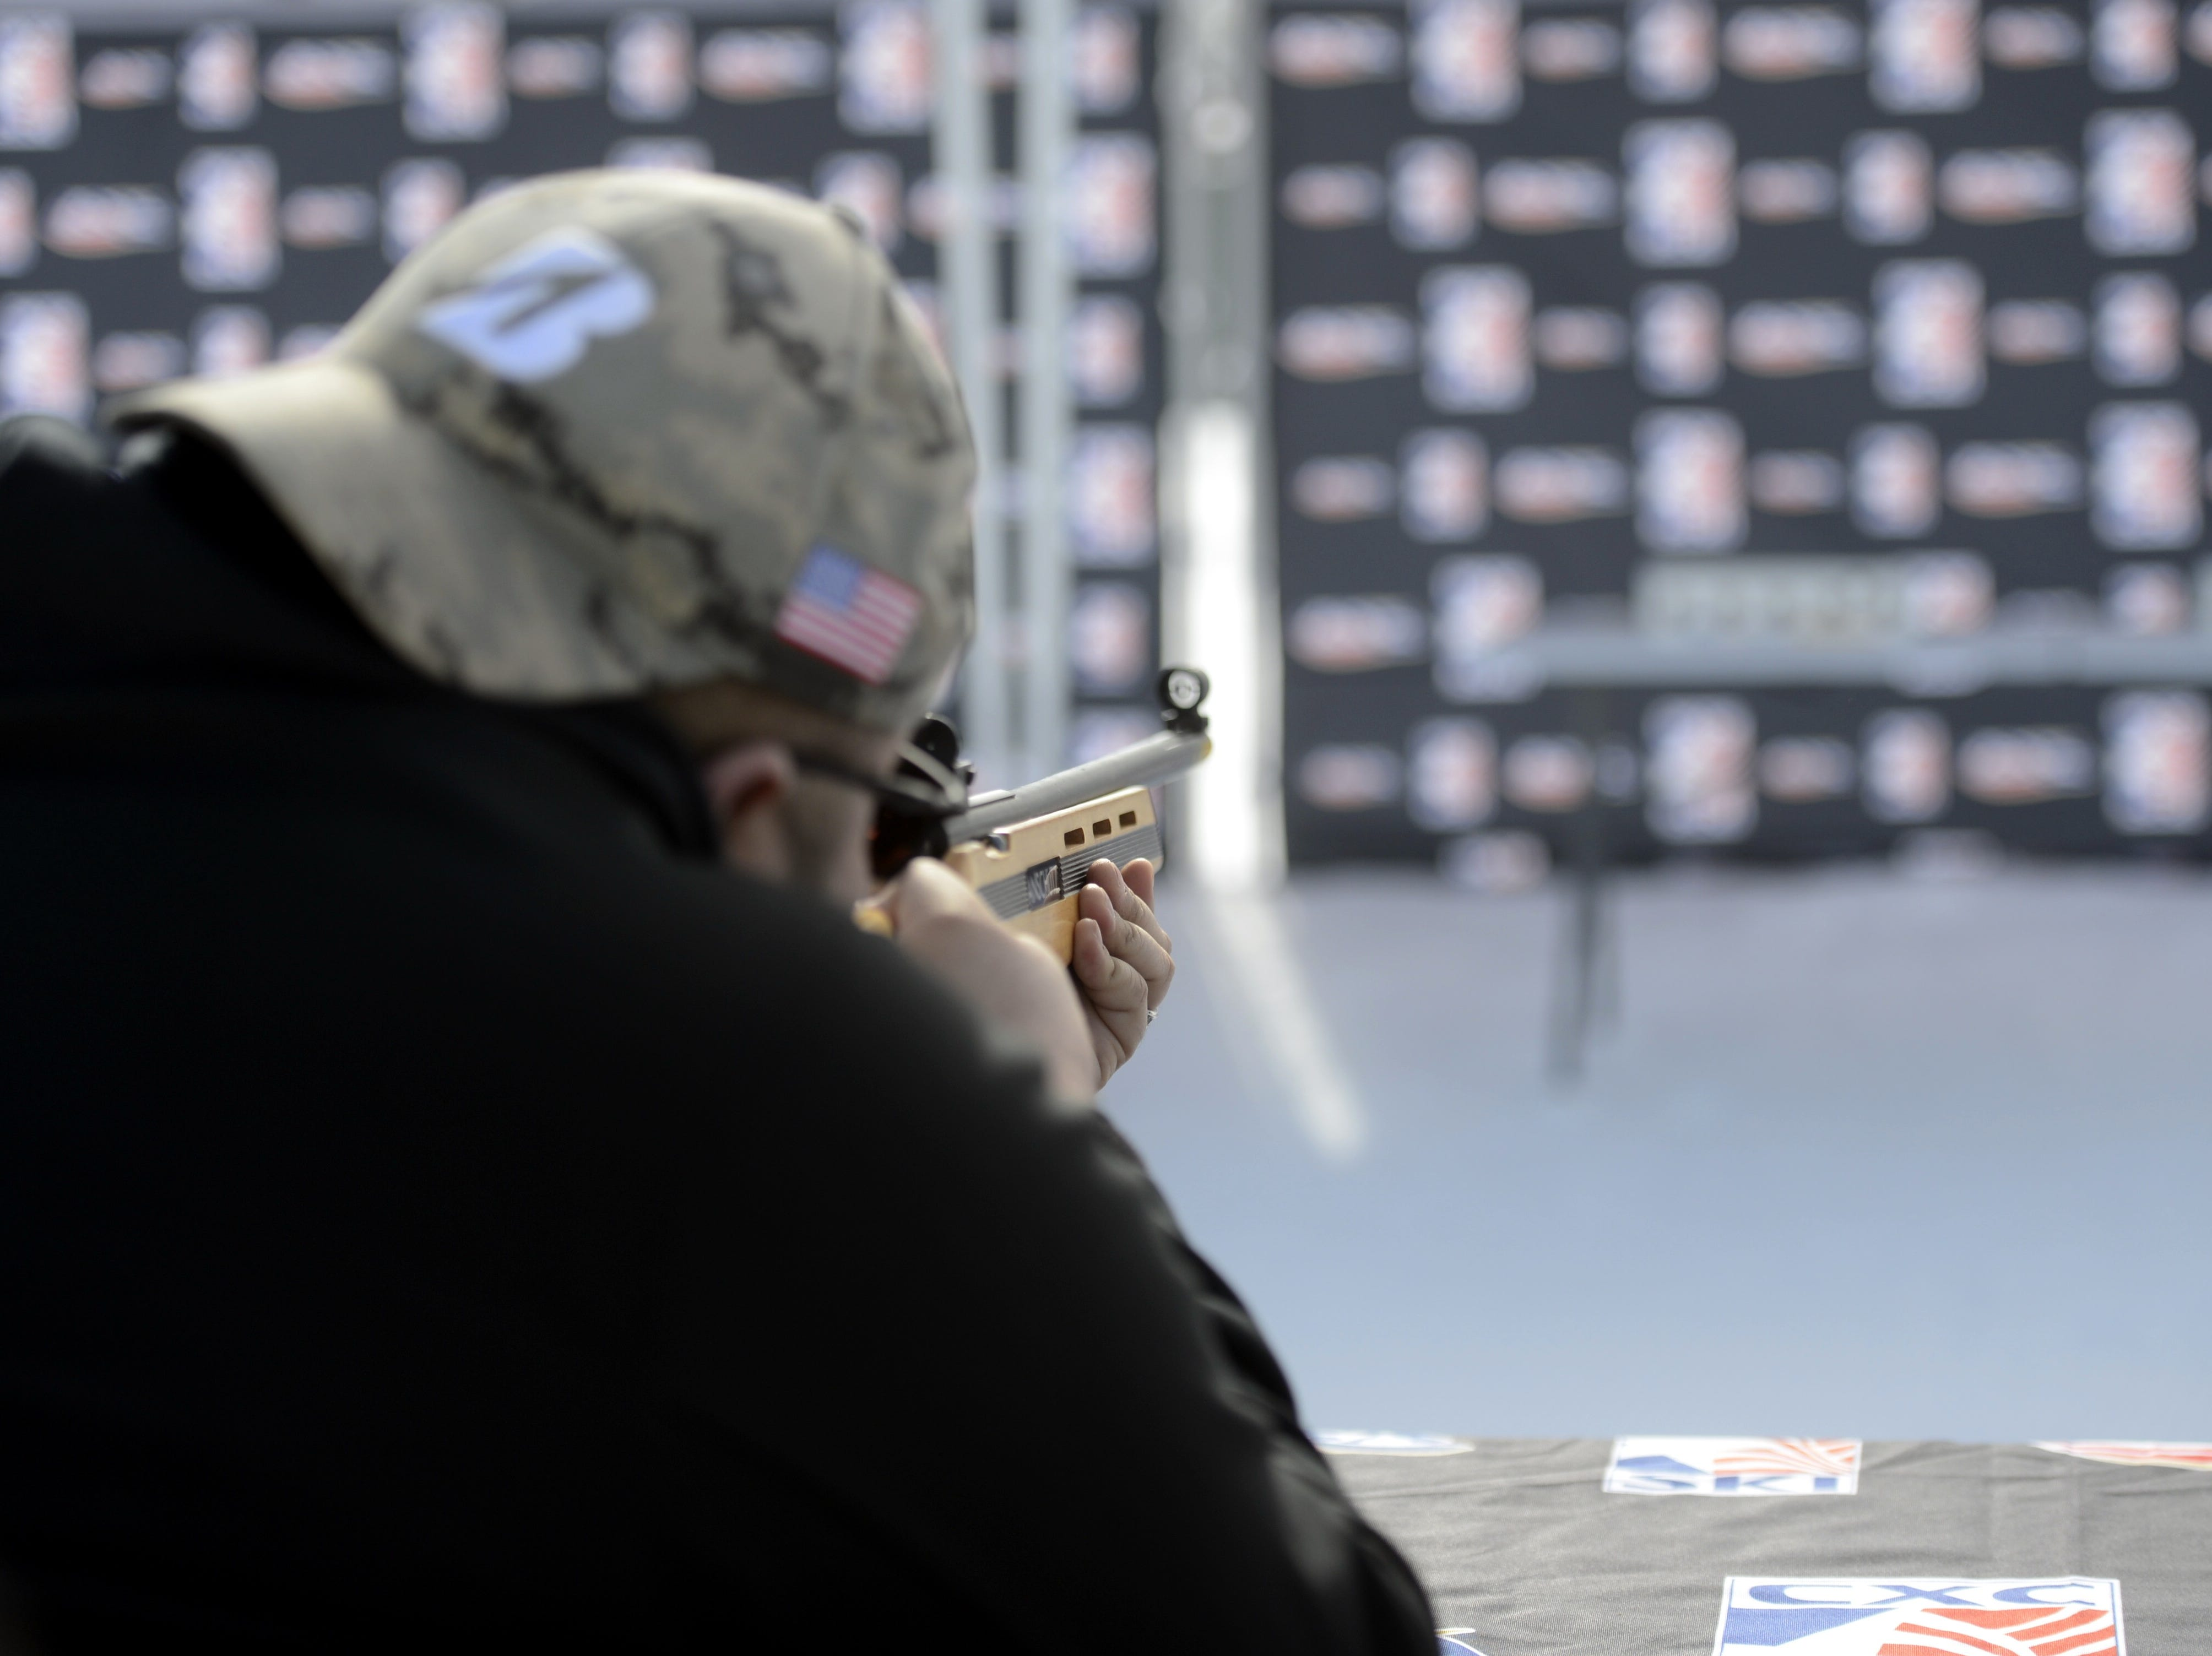 A competitor aims at targets with a laser rifle as part of the biathlon event during the Titletown Winter Games on Saturday, Feb. 16, 2019.